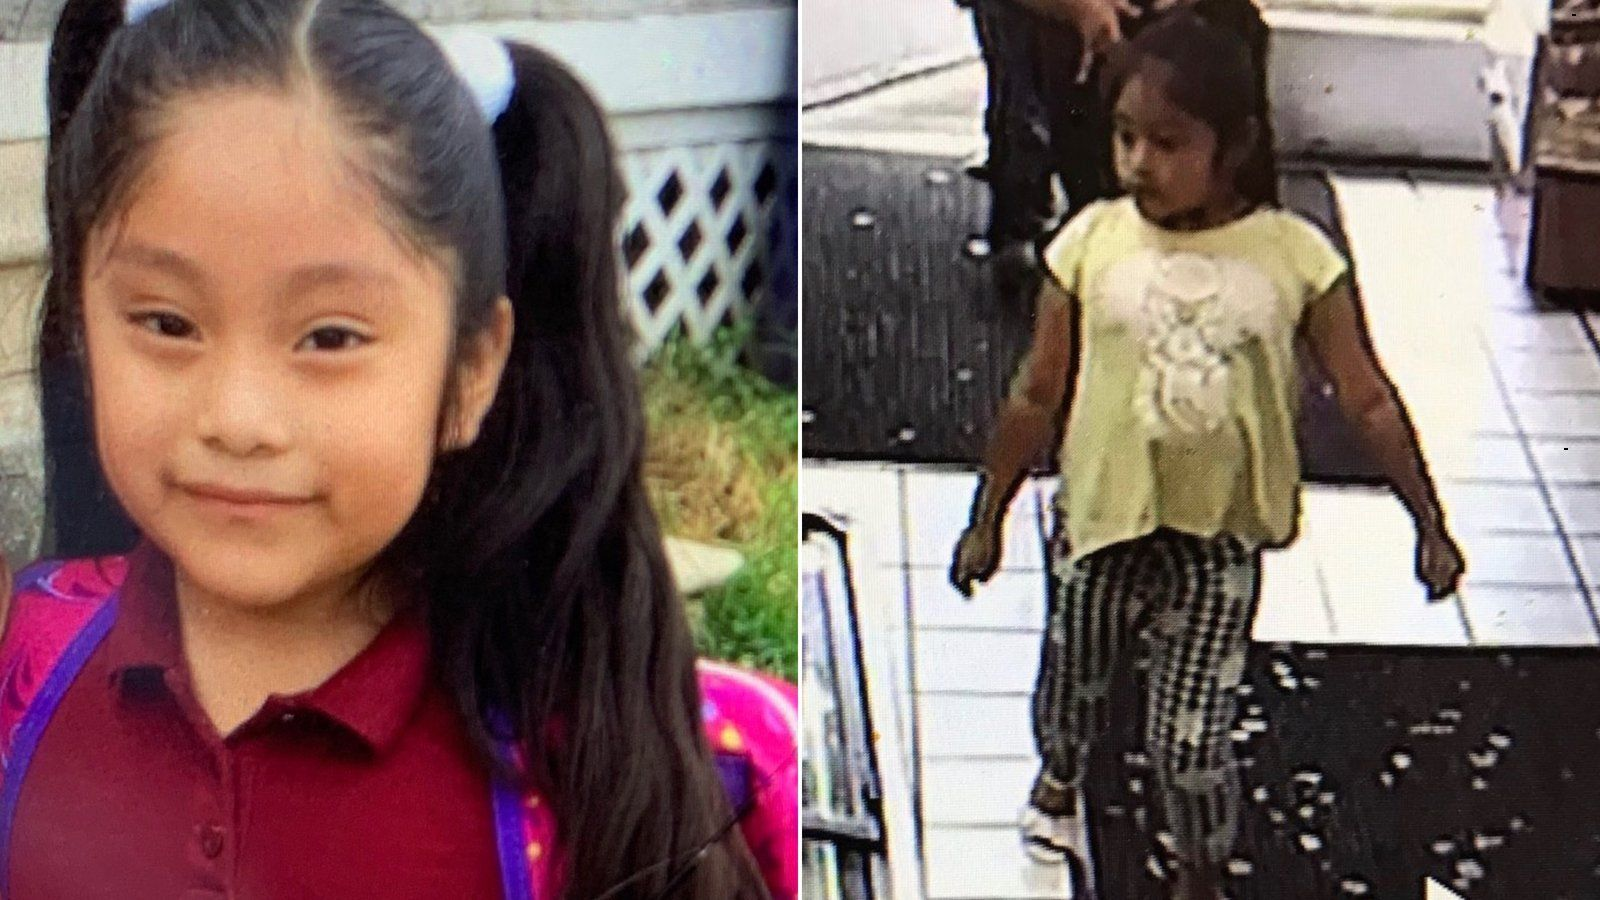 A $35,000 reward has been offered for Dulce Maria Alavez, 5, who authorities say may have been abducted from a playground in New Jersey. Photo credit:{ }Bridgeton Police Dept.